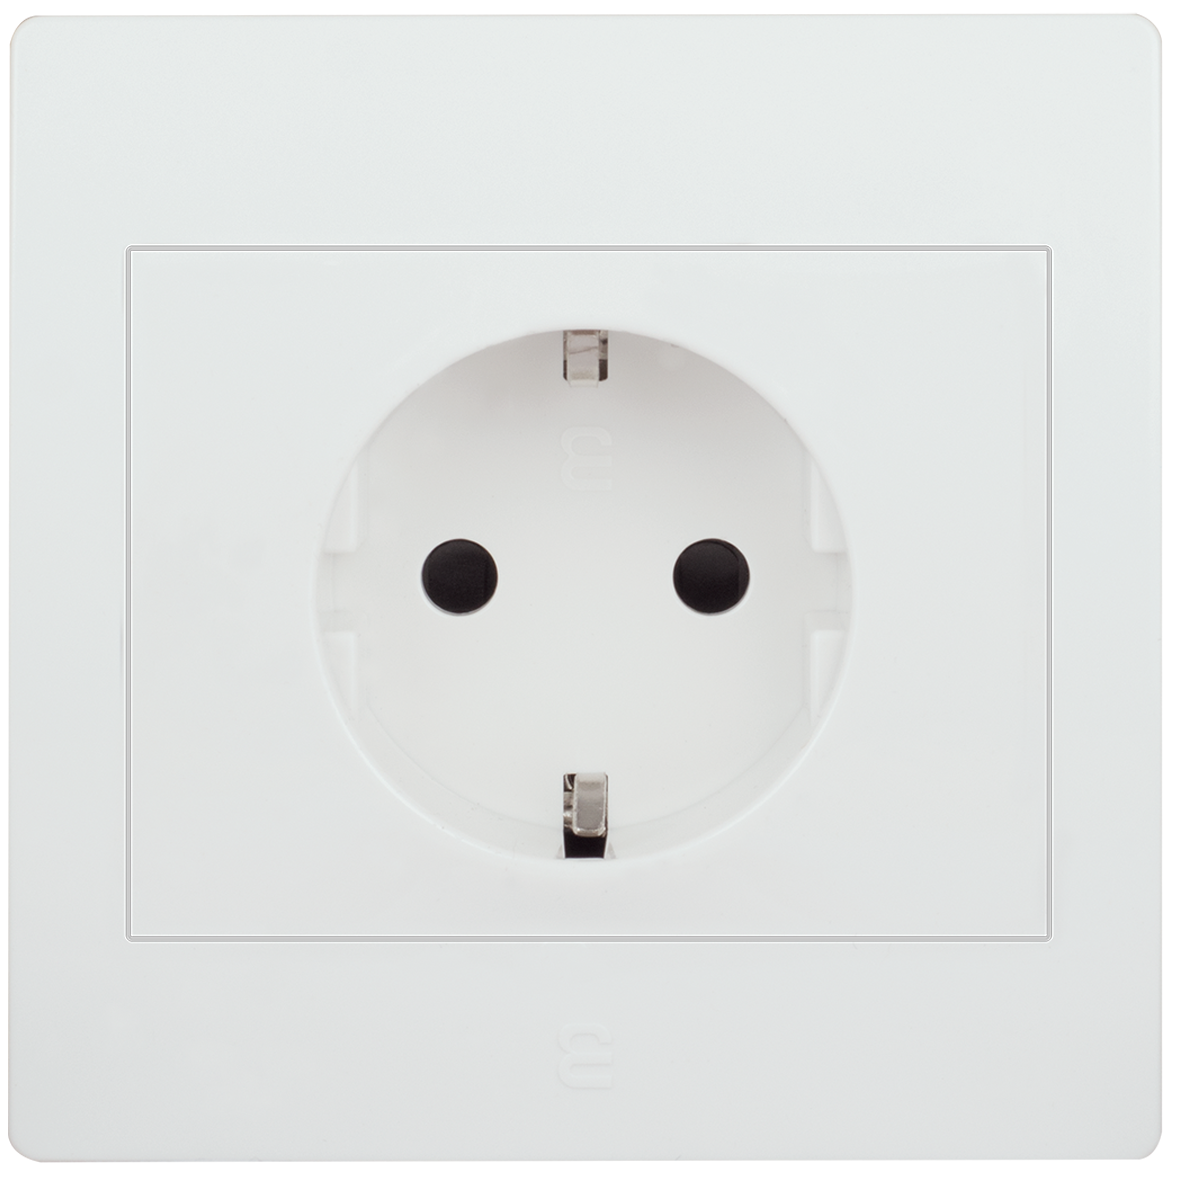 Socket german type with